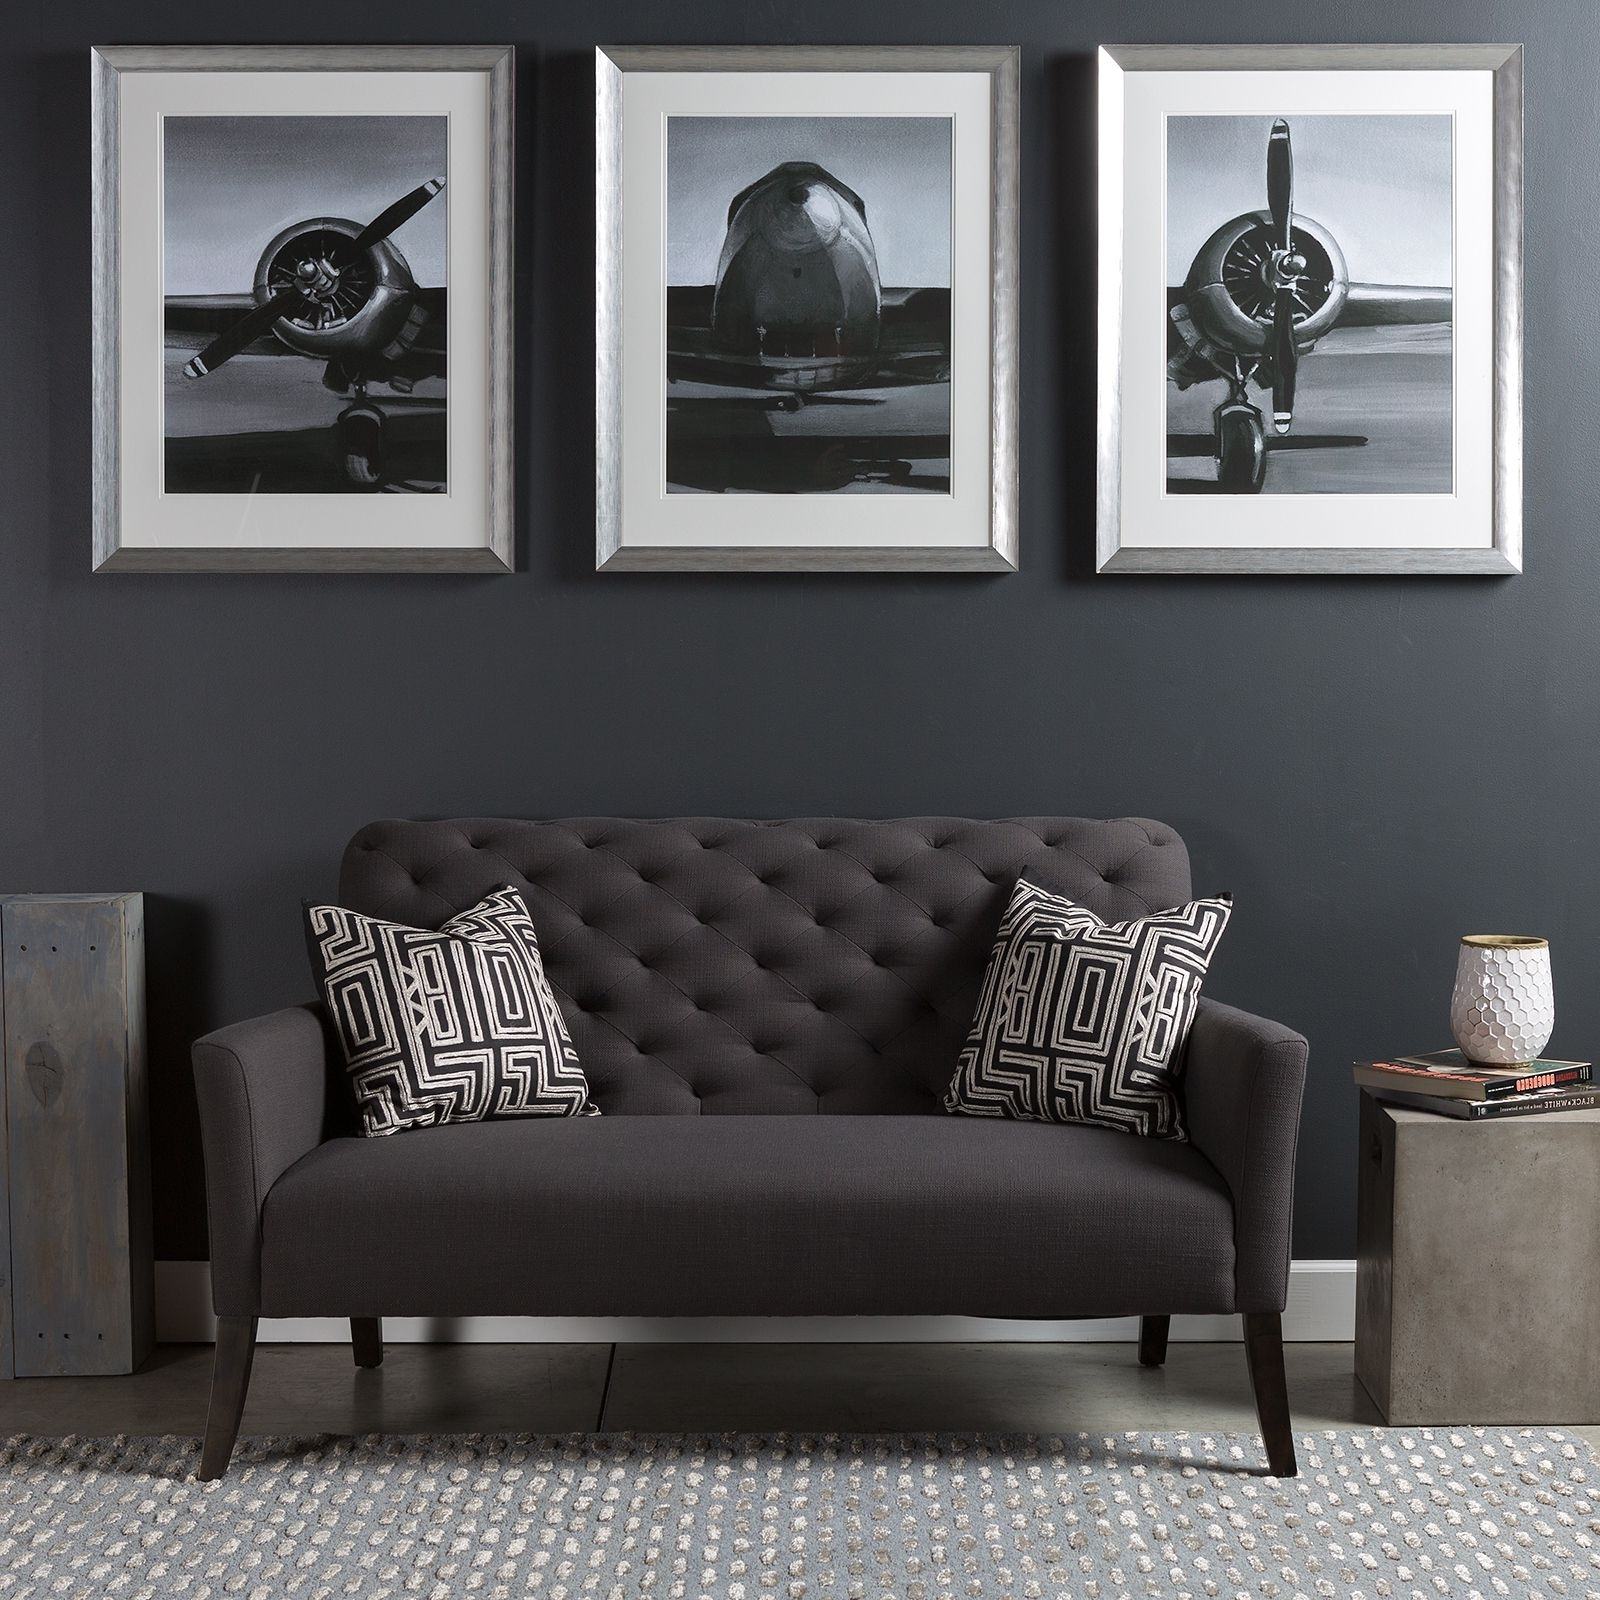 Triptych Wall Art Piece With A Modern Industrial Flare; A Series Of Inside Most Up To Date Airplane Wall Art (View 19 of 20)